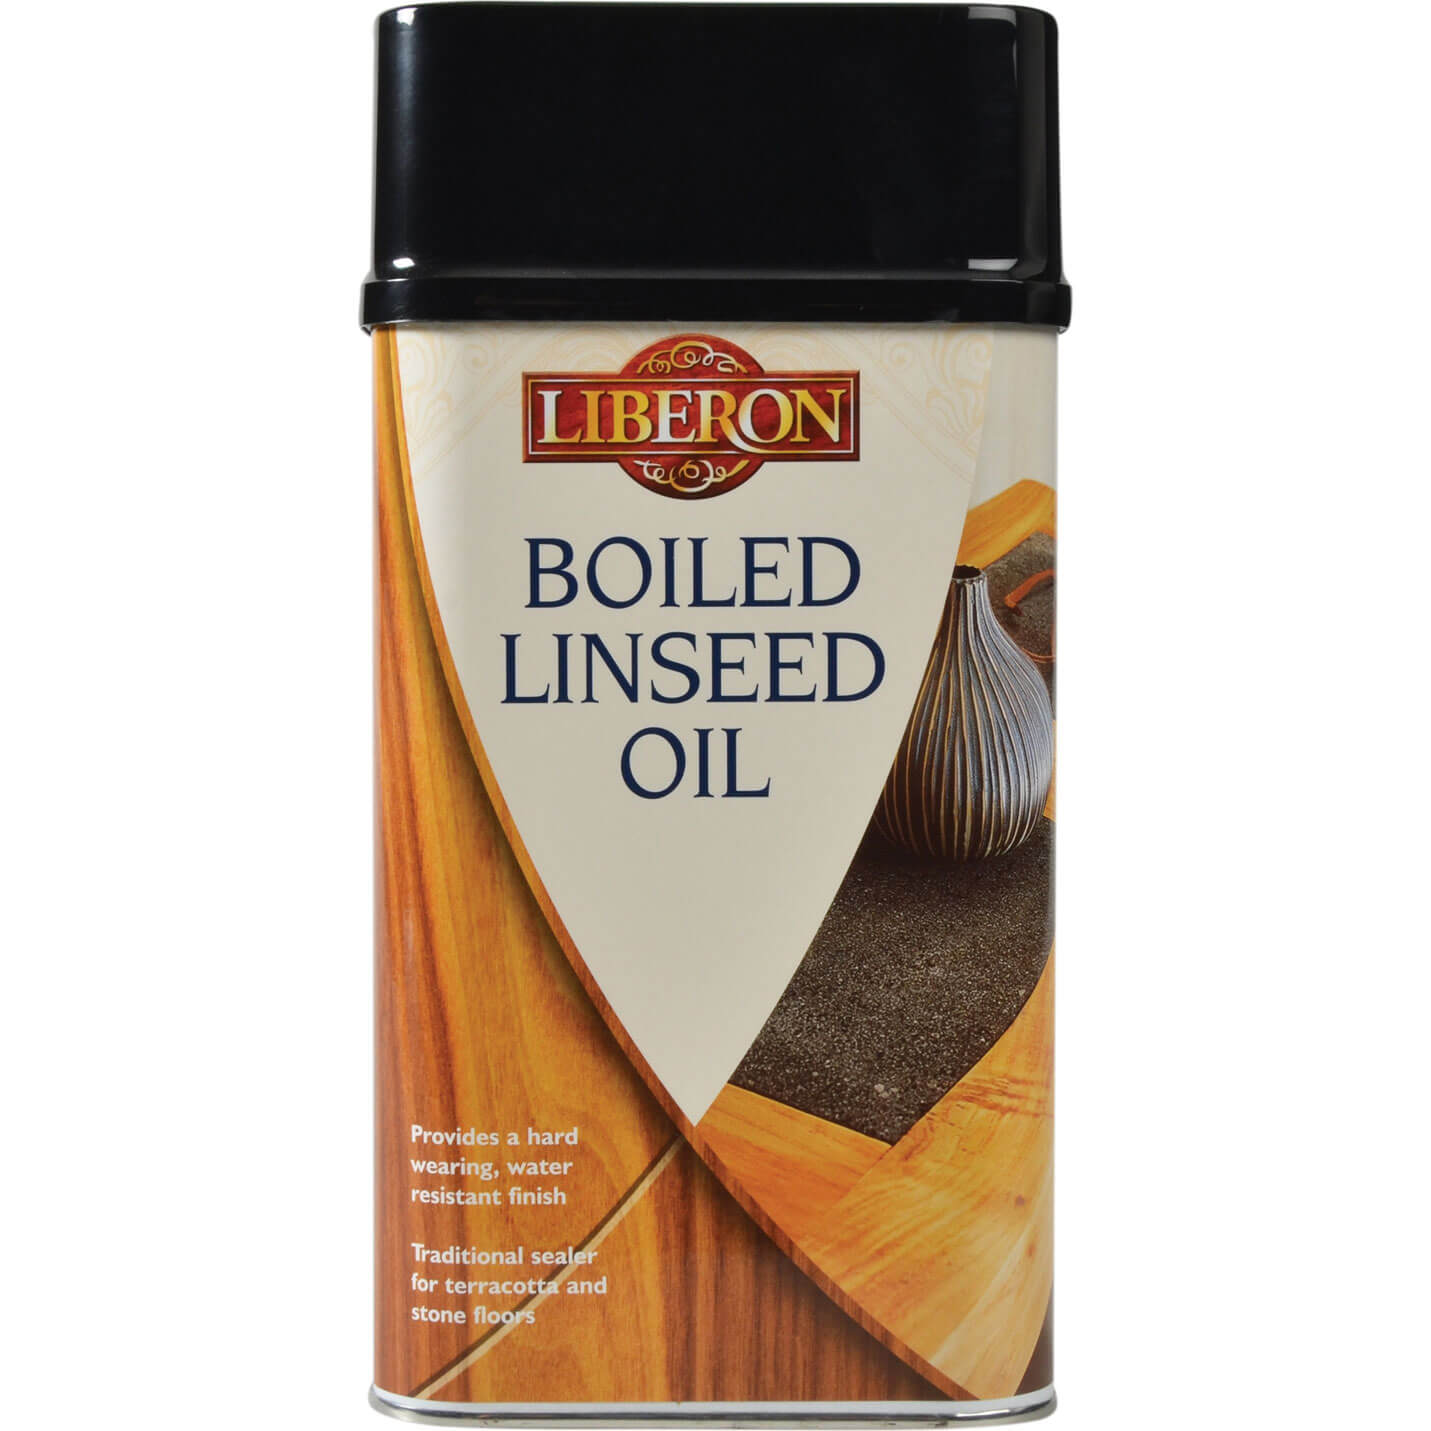 Image of Liberon Boiled Linseed Oil 1l